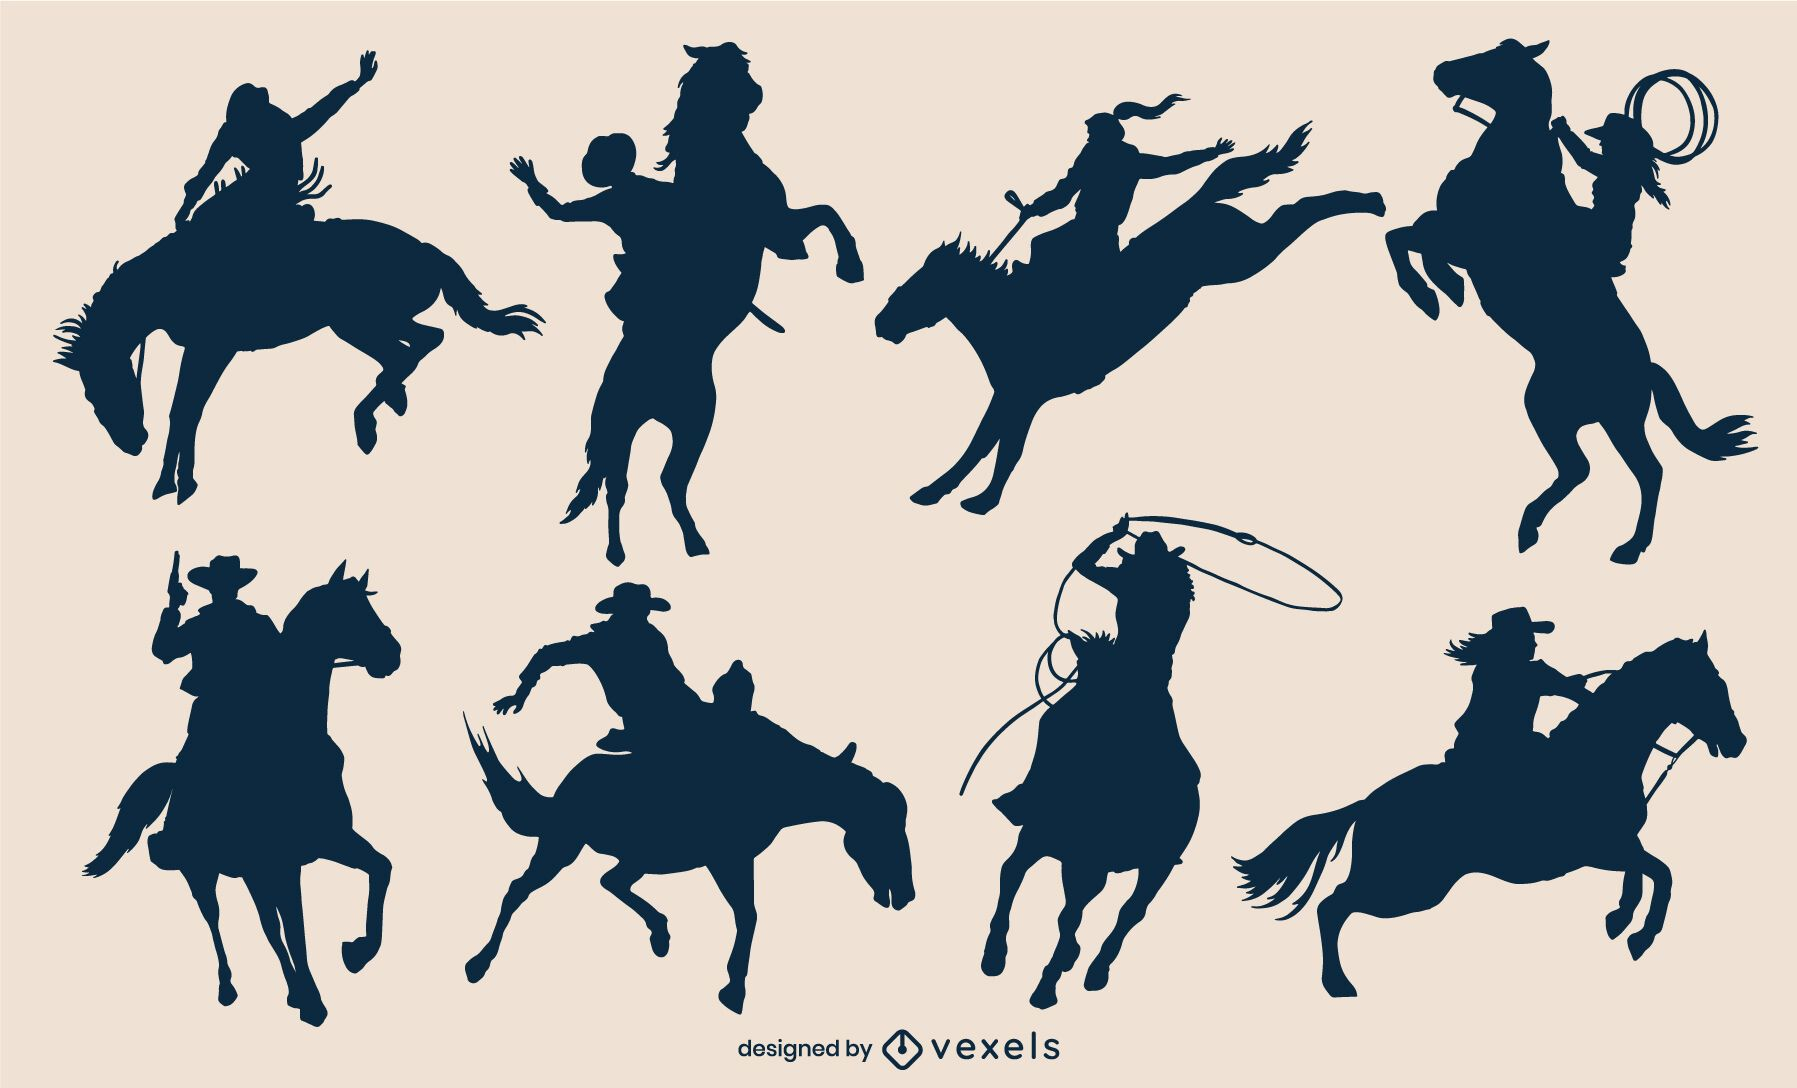 Moving cowboys on horses silhouettes